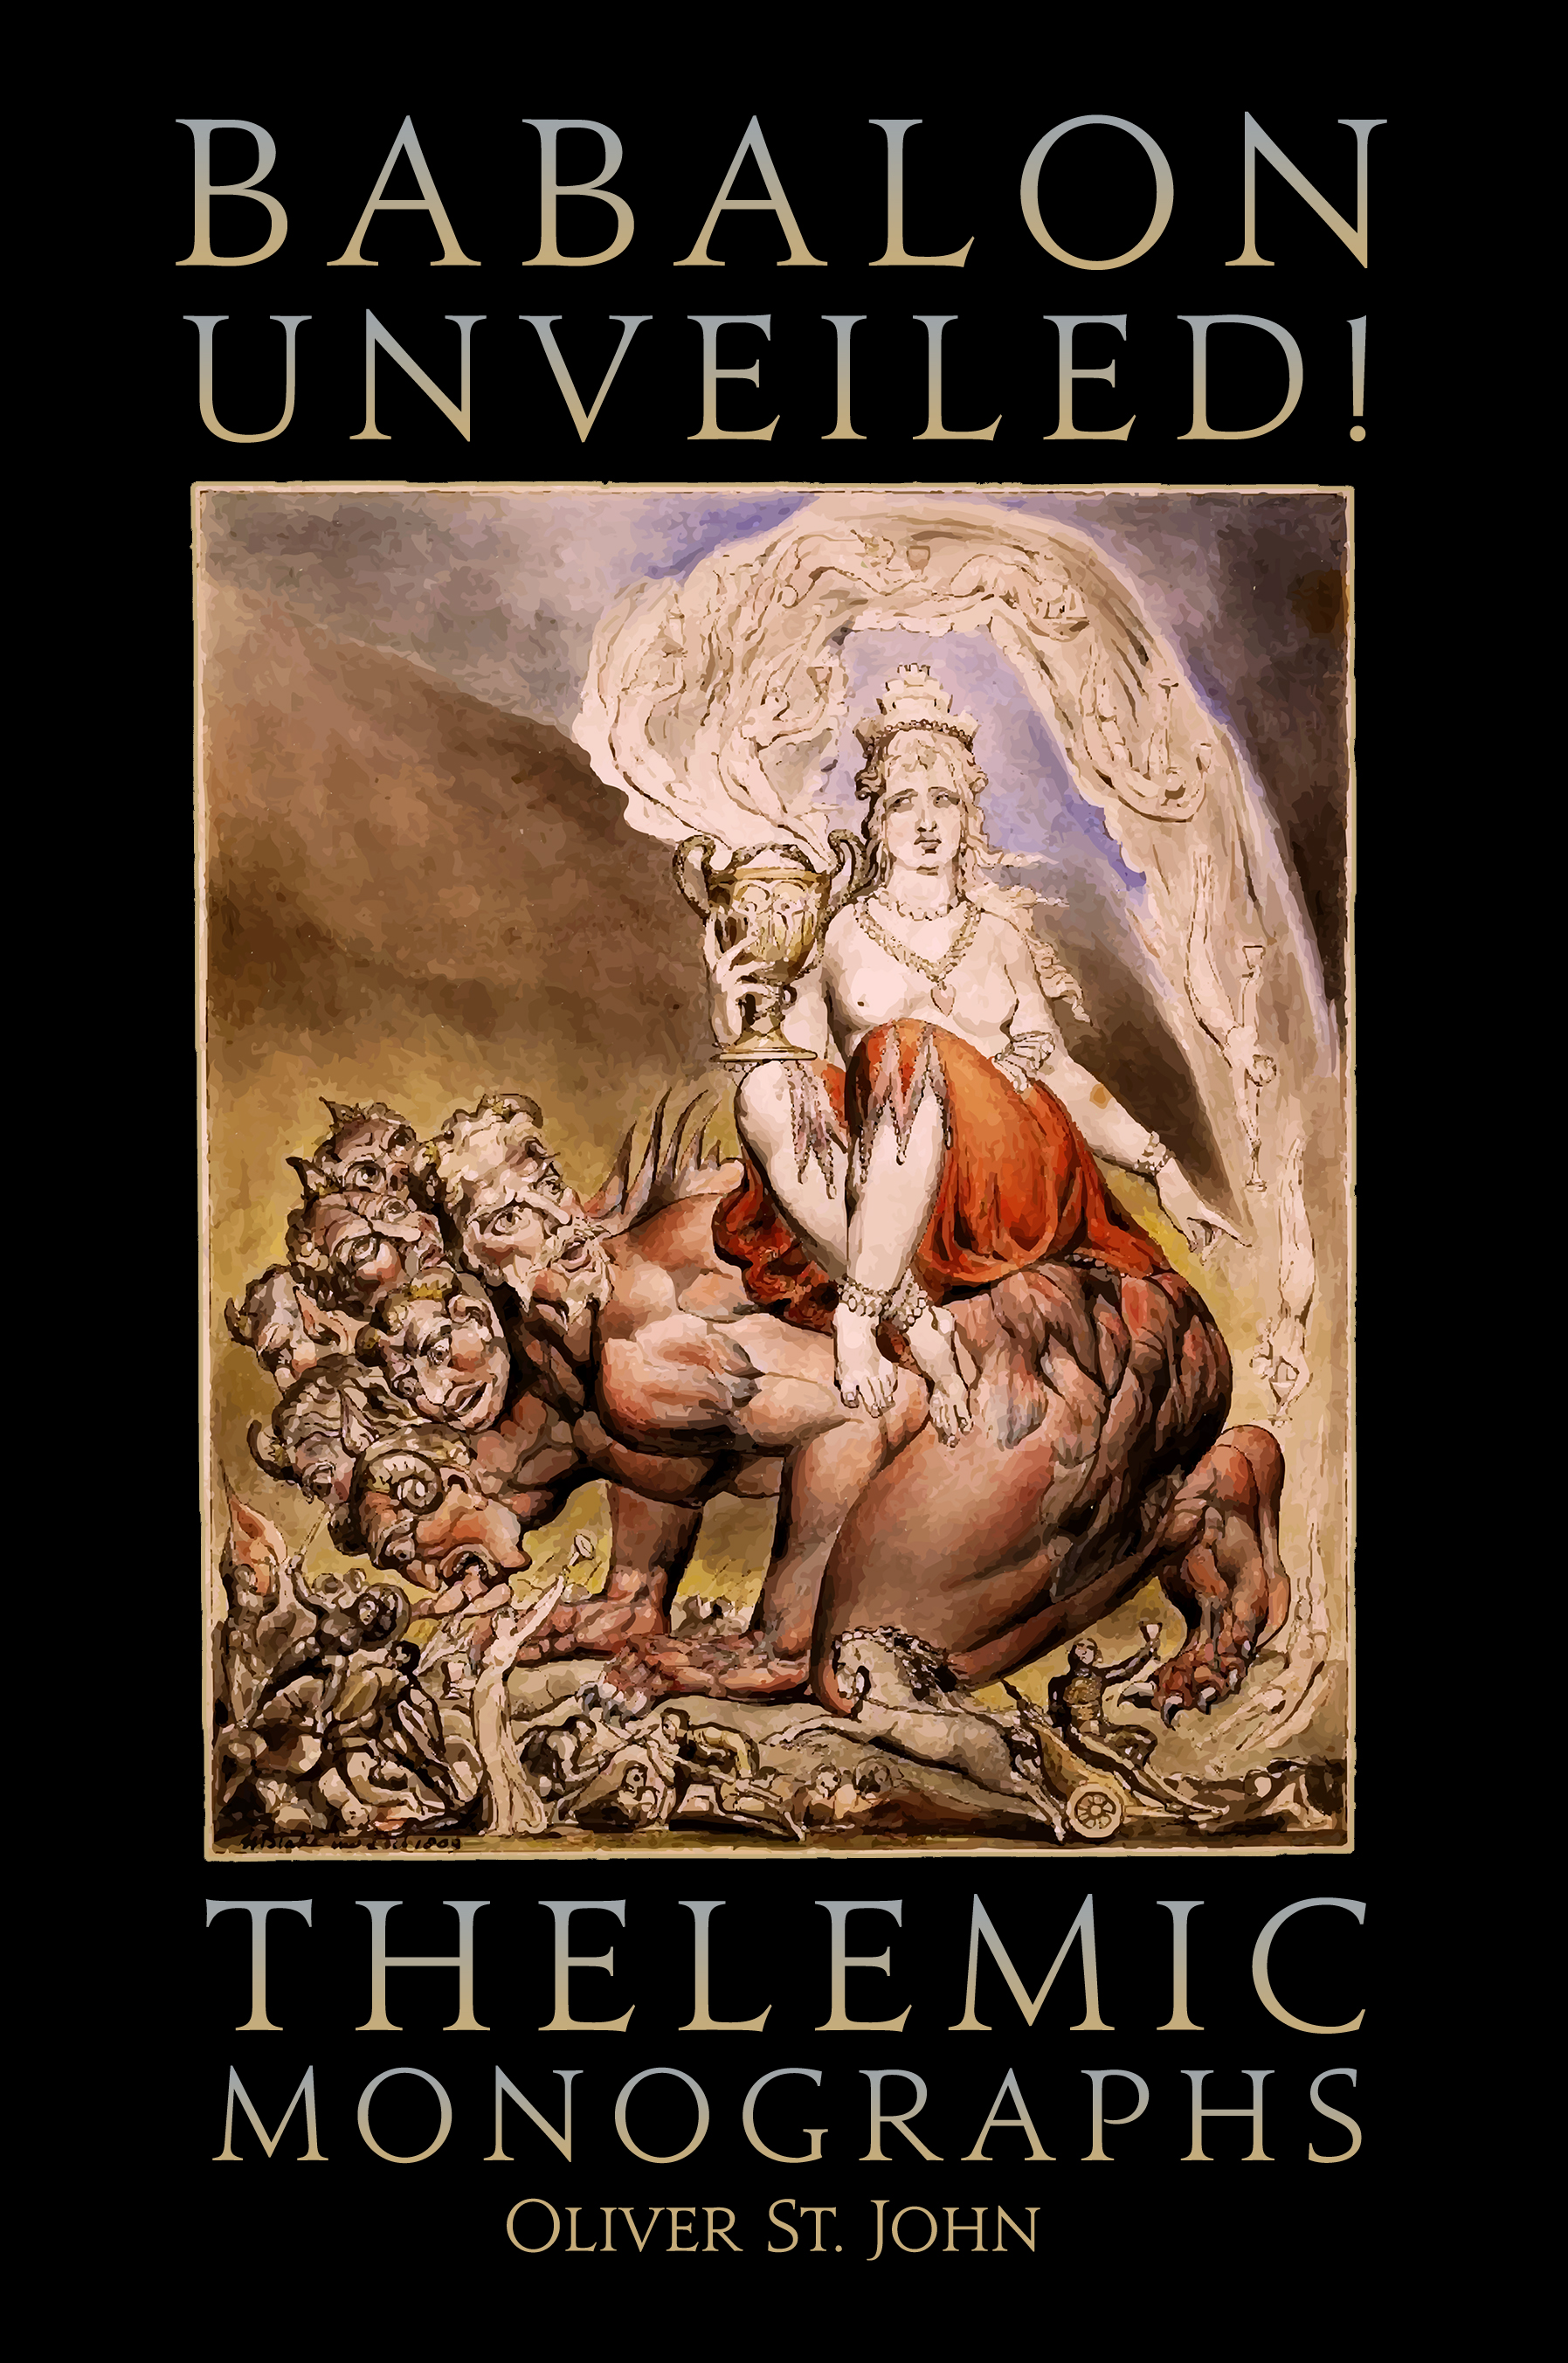 Babalon Unveiled! Cover art from Babalon Unveiled! Thelemic Monographs